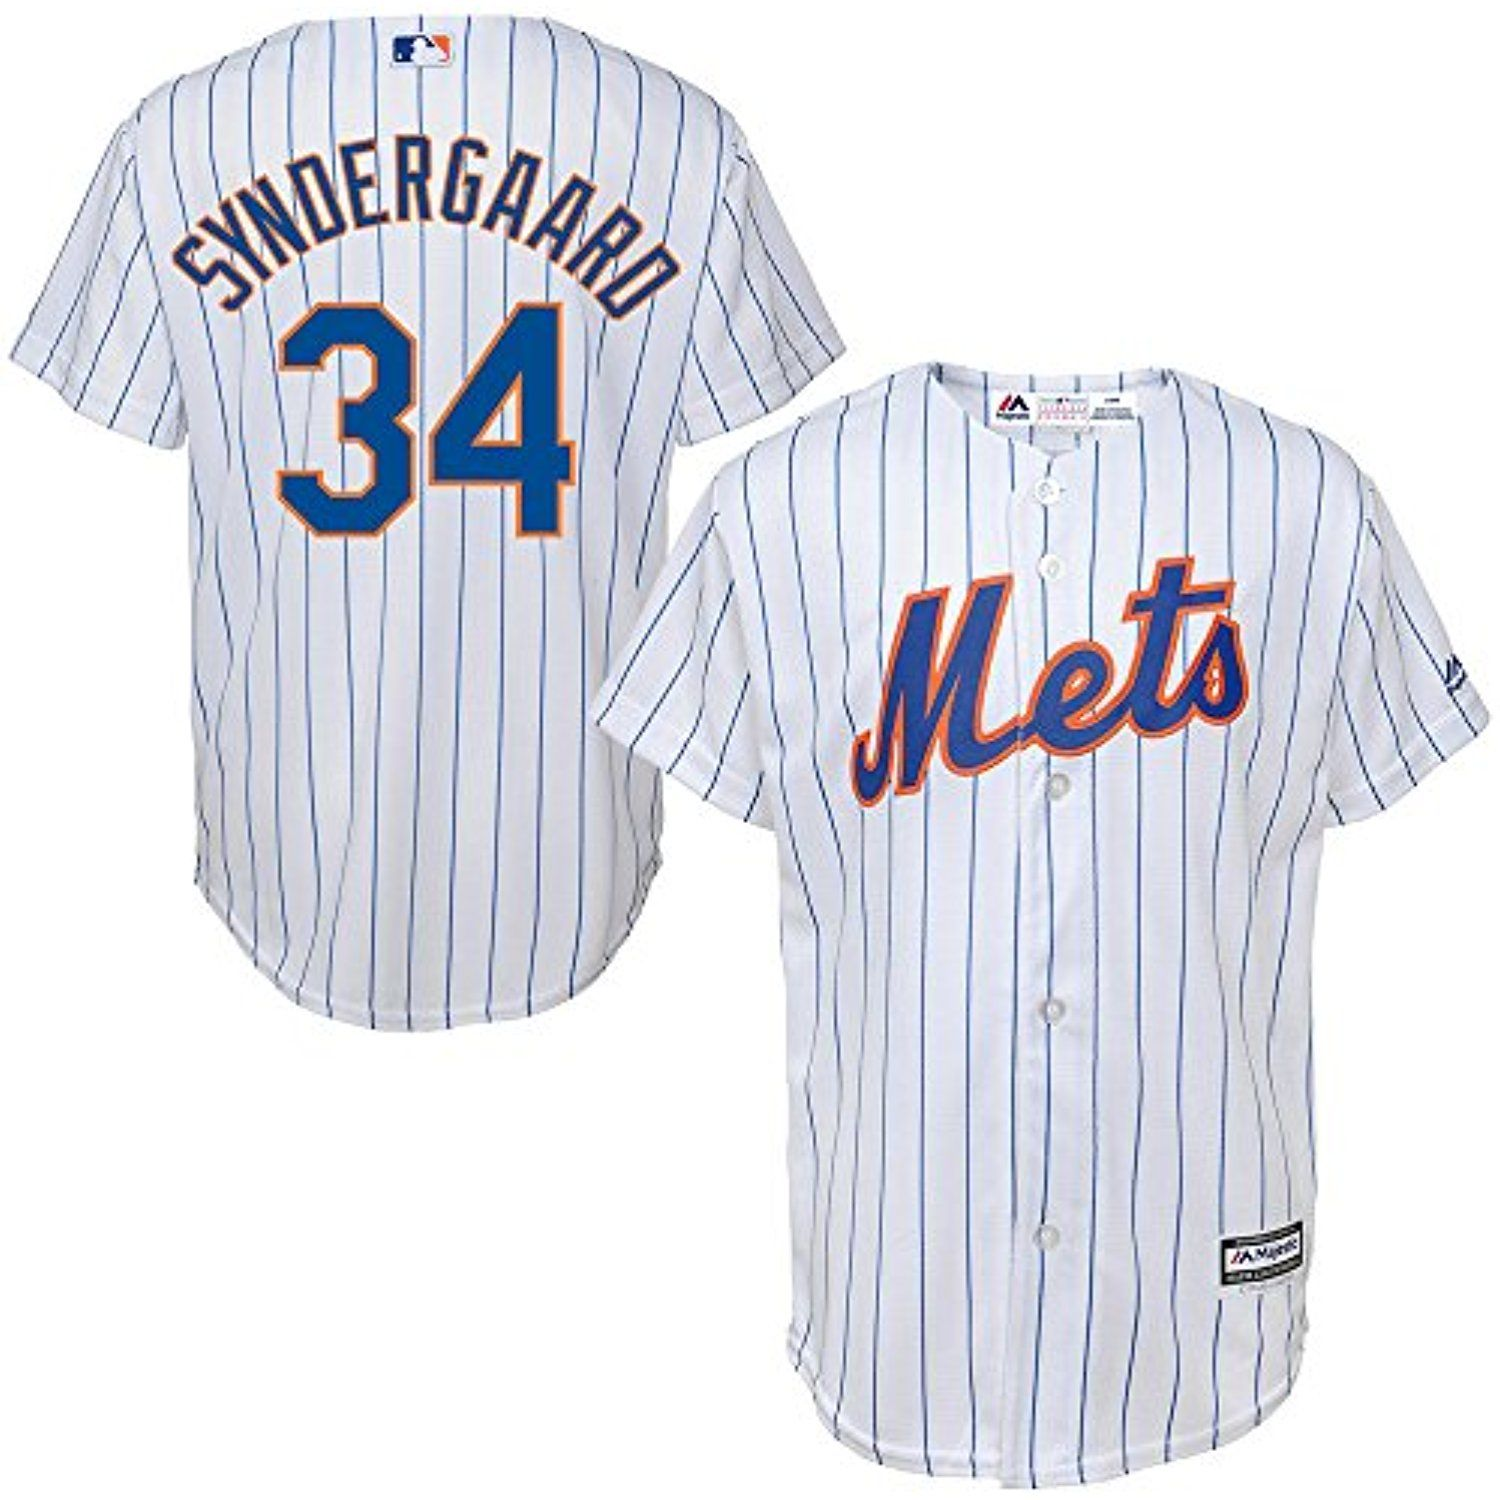 ab3d636a Noah Syndergaard New York Mets MLB Majestic Youth White Home Cool Base  Replica Jersey (Size Medium 10-12) -- More info could be found at the image  url.